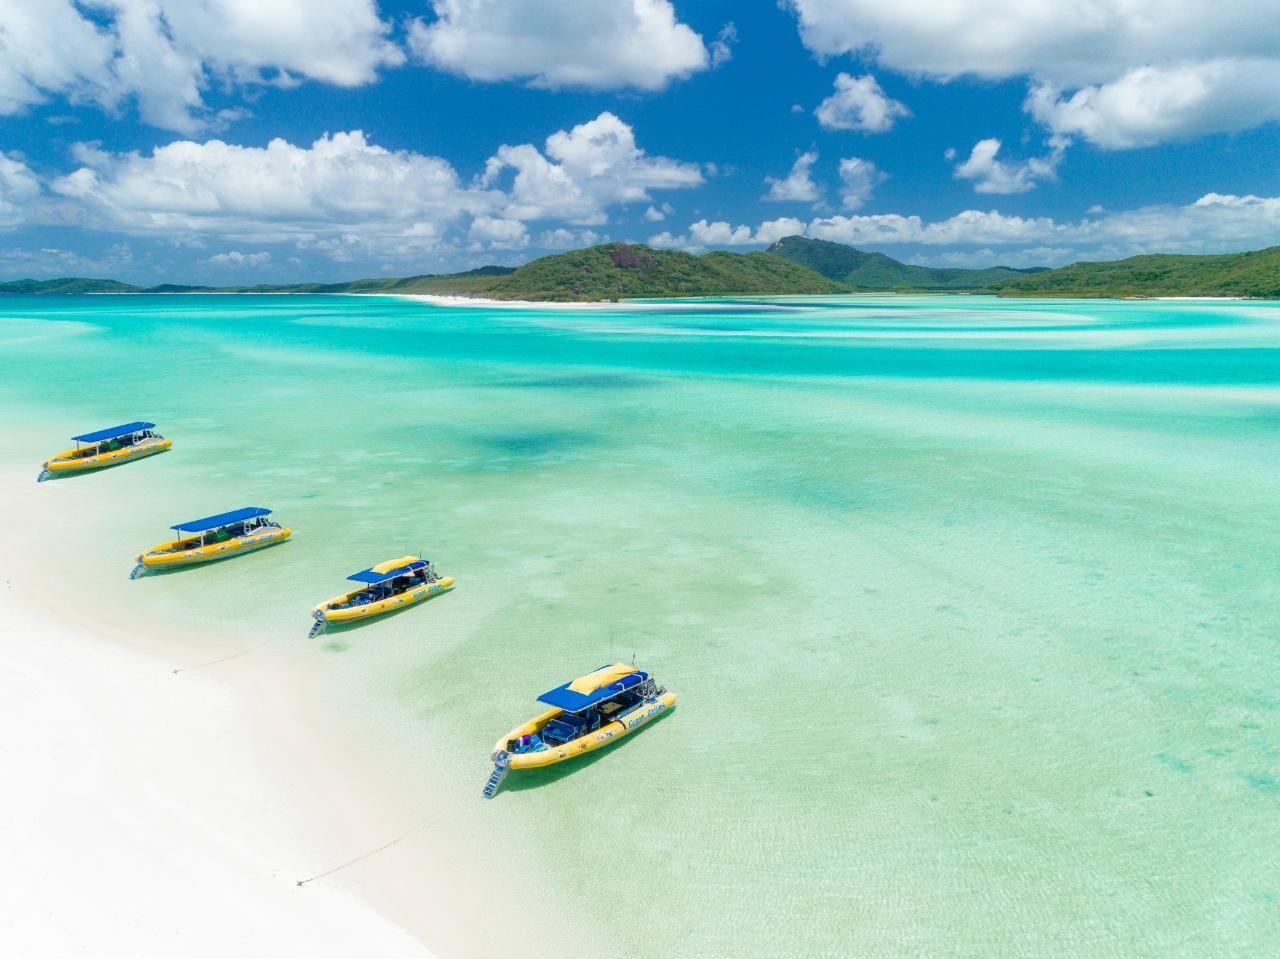 🐠 Whitsundays Island: North + South Exposure Whitehaven Beach, Great Barrier Reef #ee8df99e-d667-4103-b2f2-025340616d7e